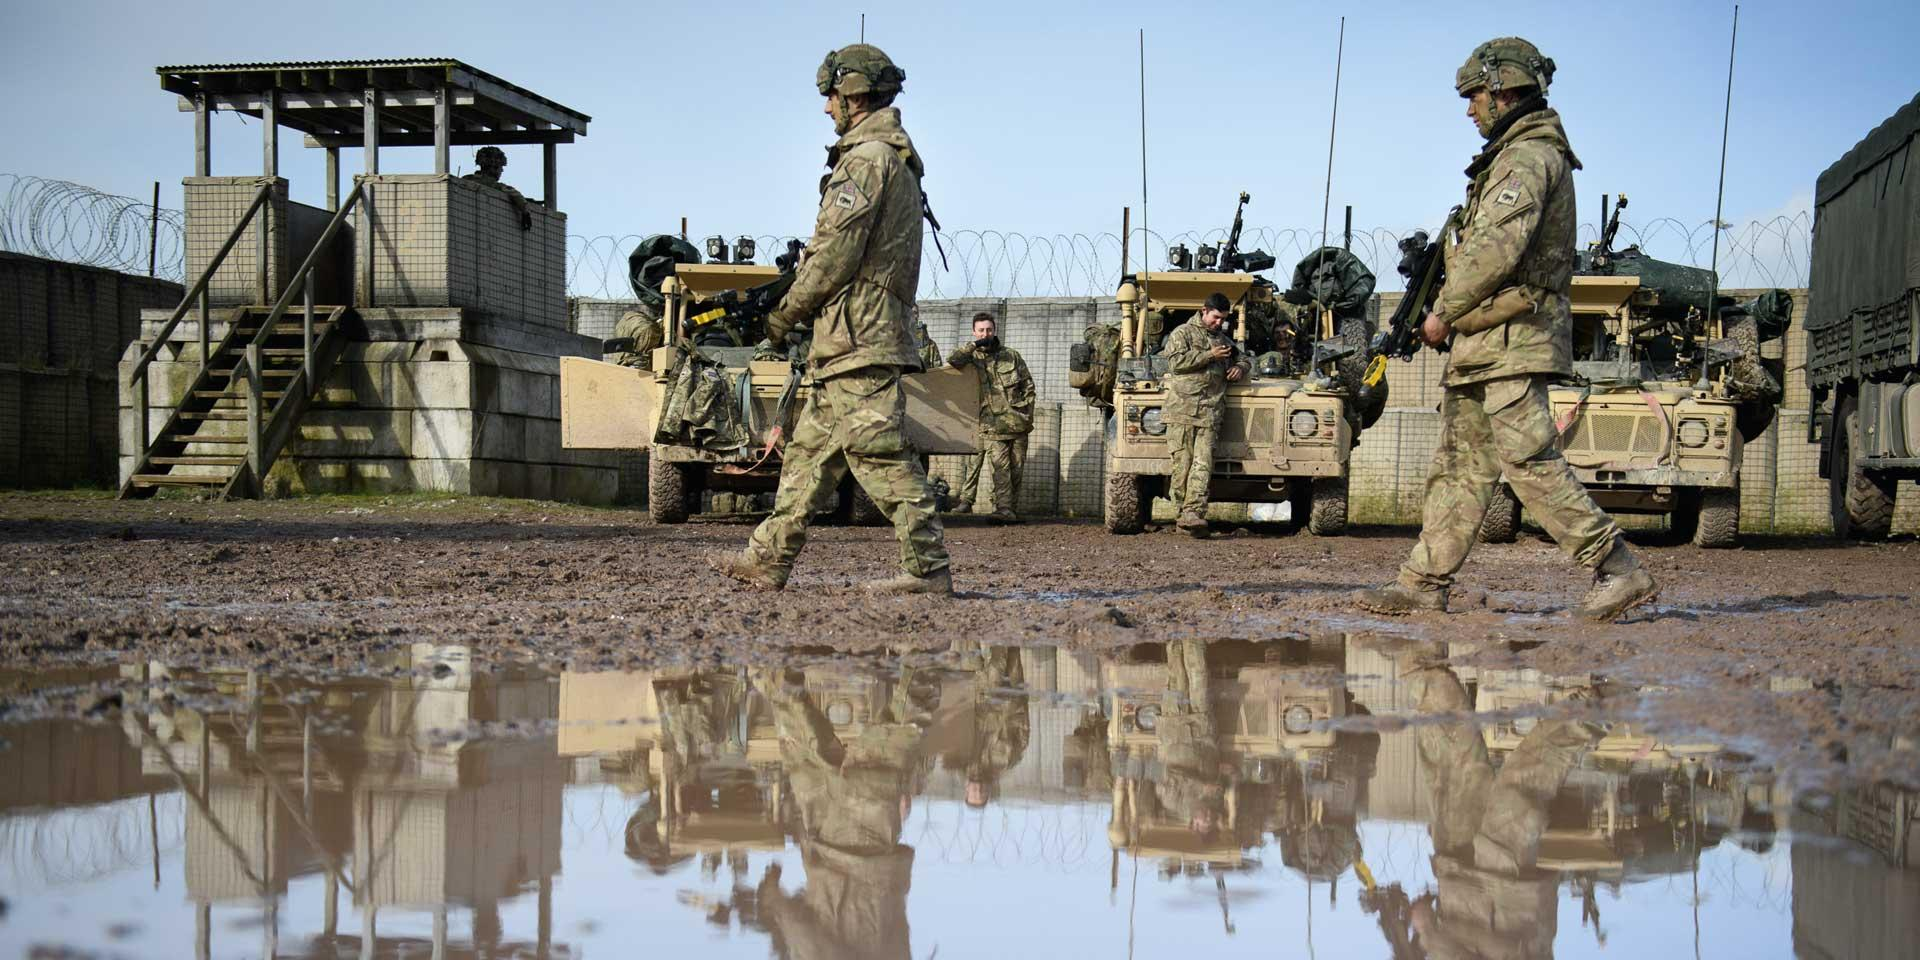 Reconnaissance platoon of 1st Battalion The Royal Welsh move through camp prior to a patrol exercise on Salisbury Plain, 2017